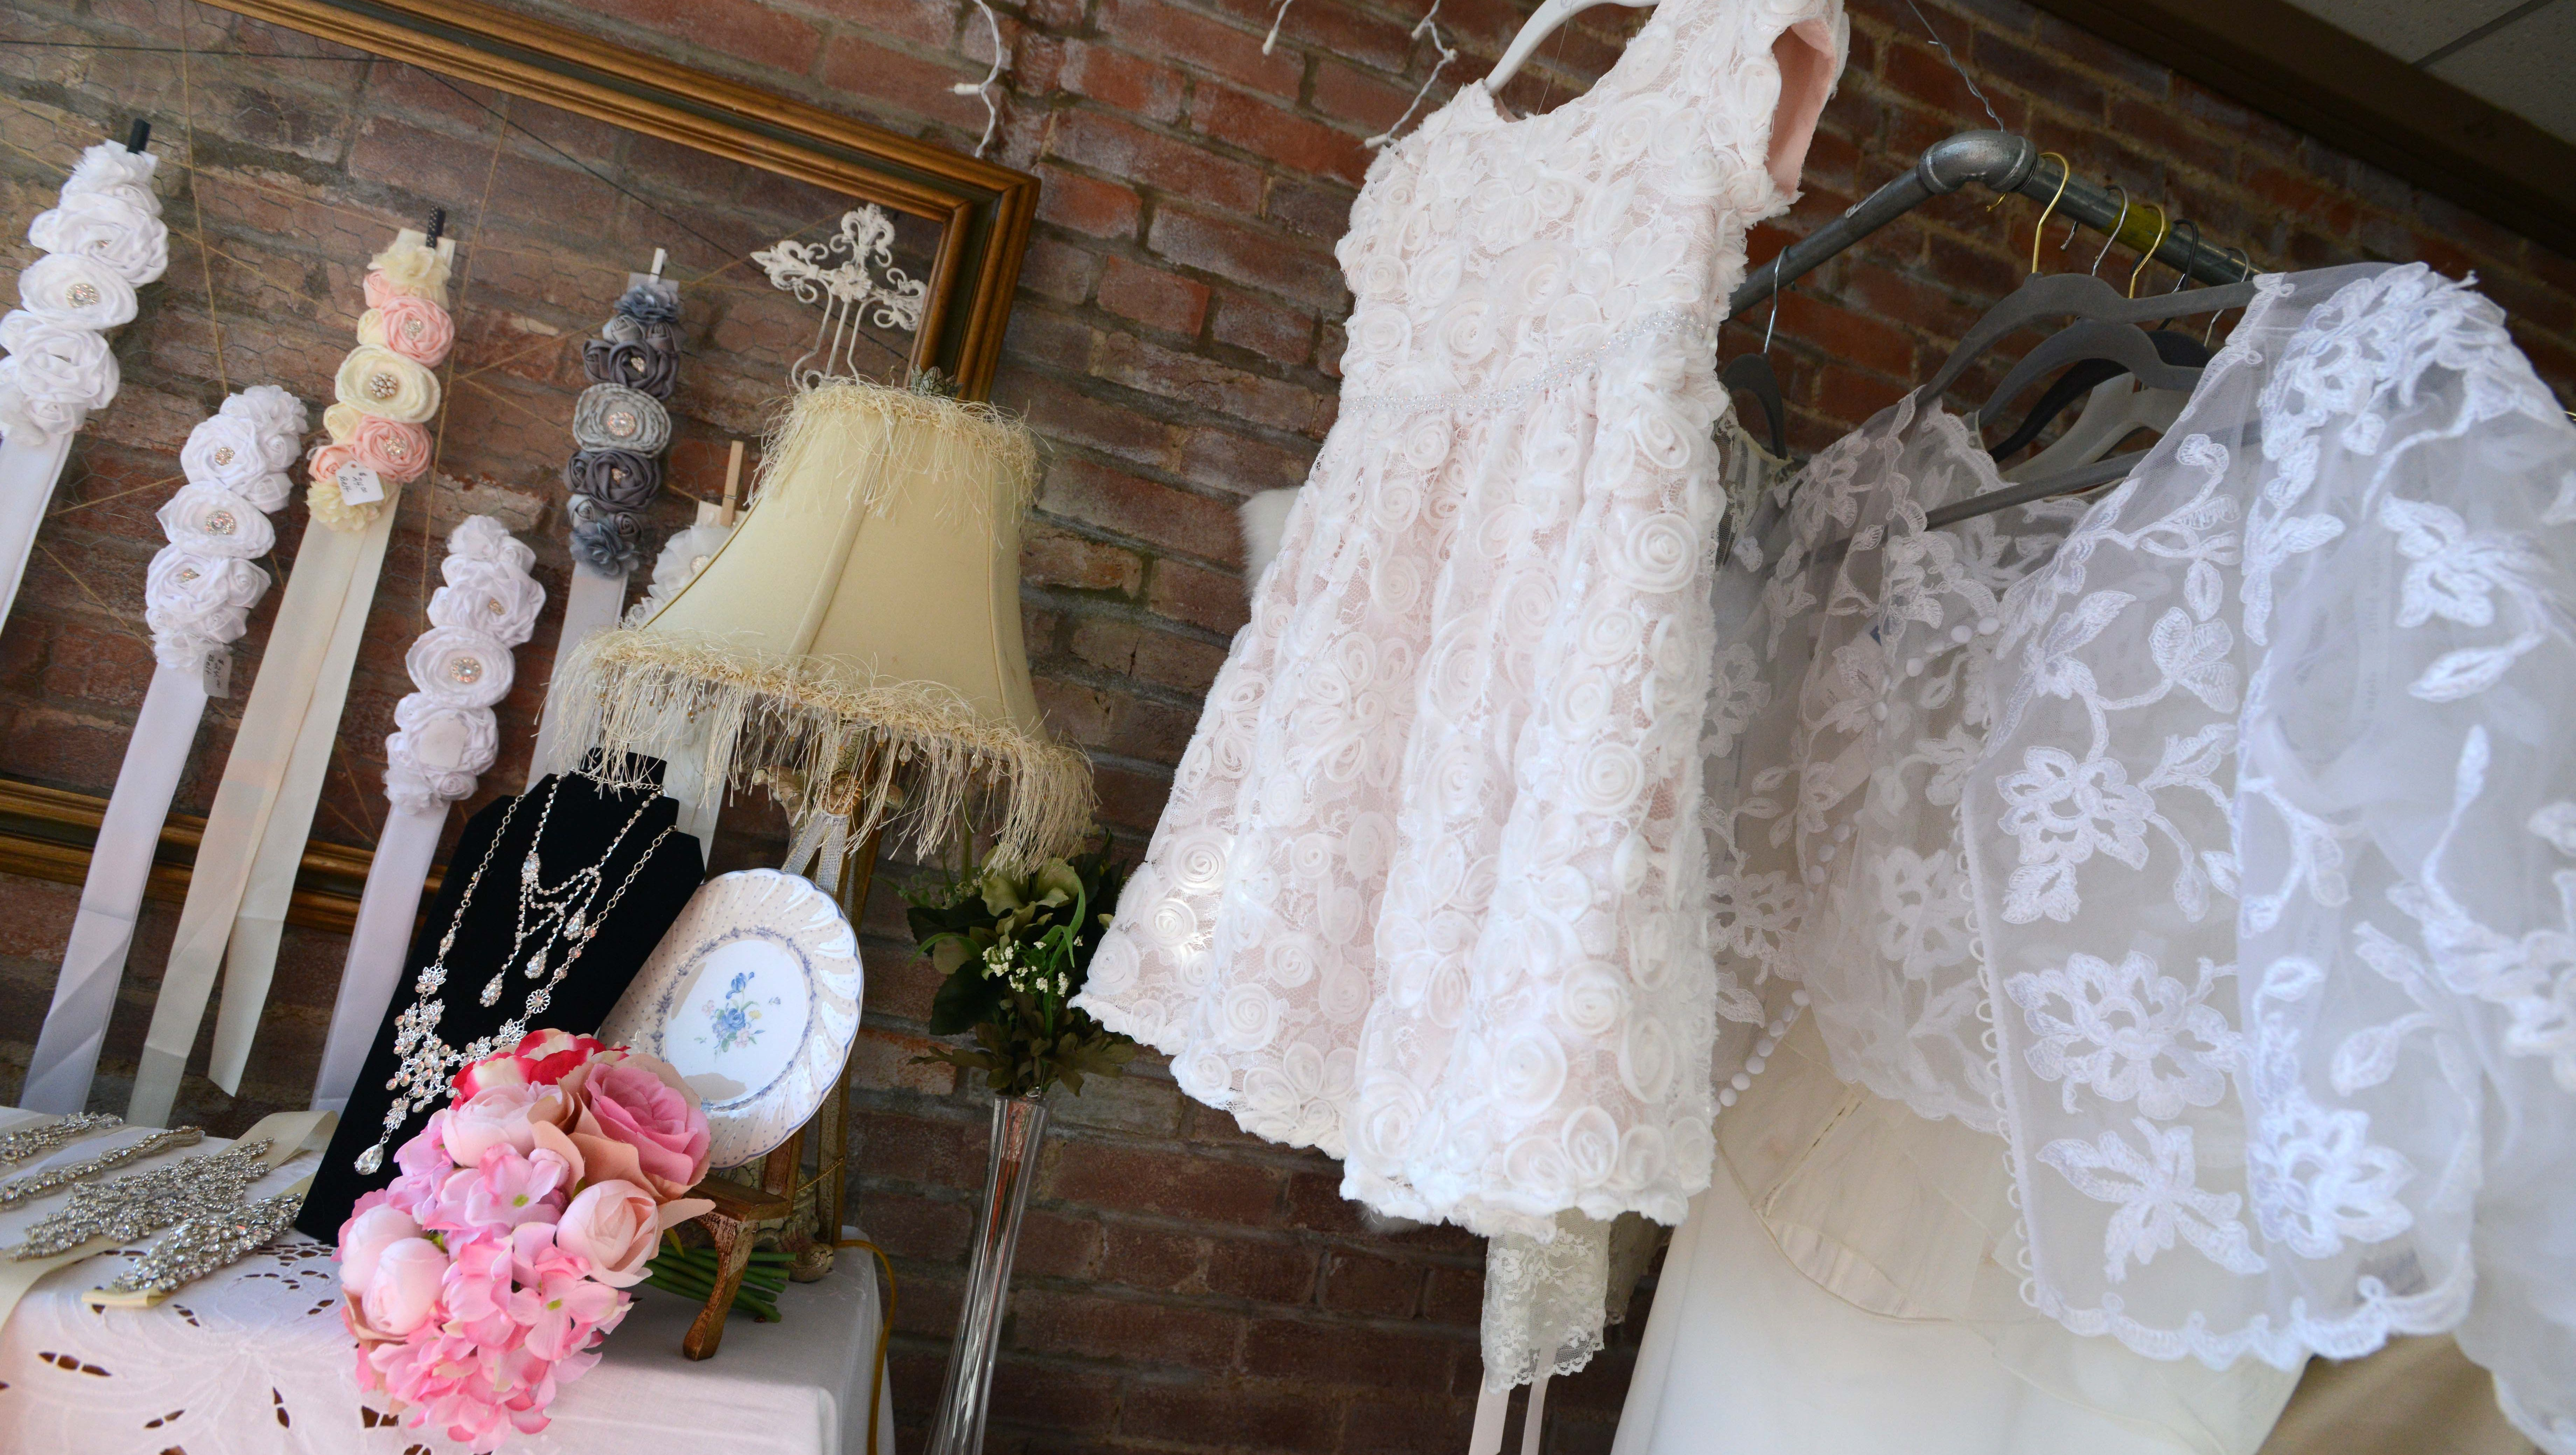 Wedding Dress Resale Shop Stays Busy In Downtown Lancaster,Casual White Beach Wedding Dress